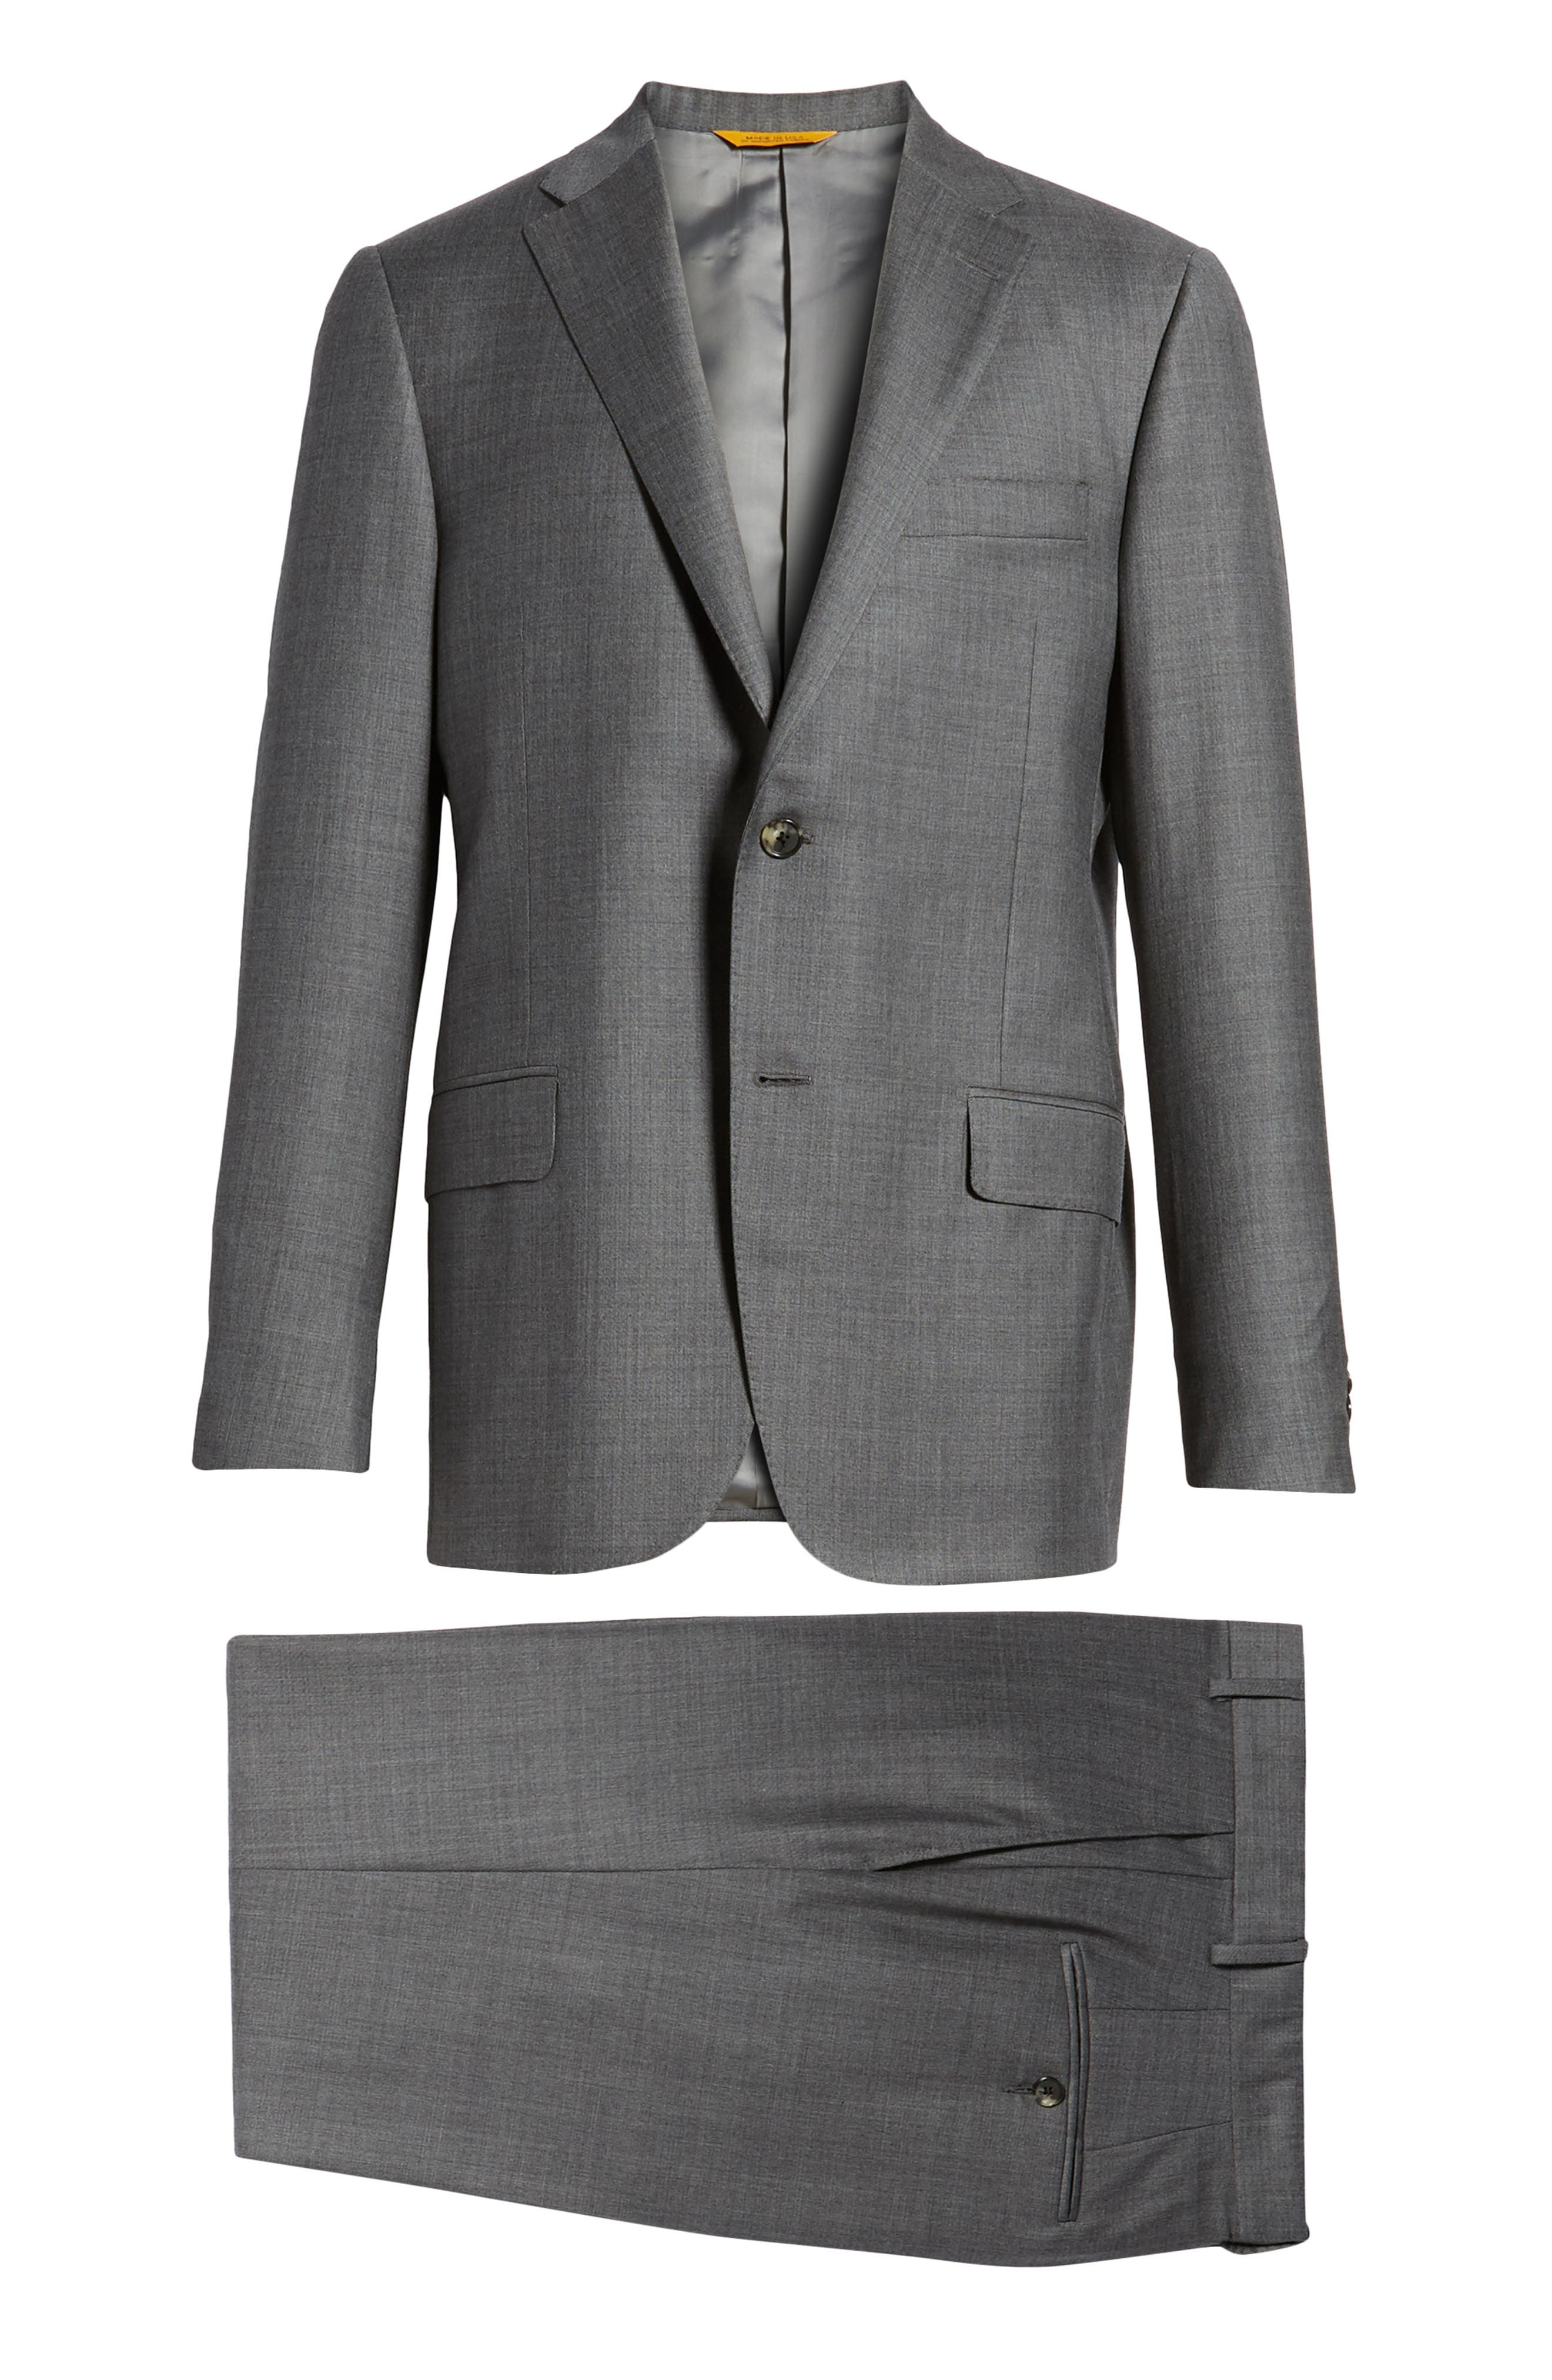 HICKEY FREEMAN,                             Classic B Fit Solid Wool Suit,                             Alternate thumbnail 8, color,                             020